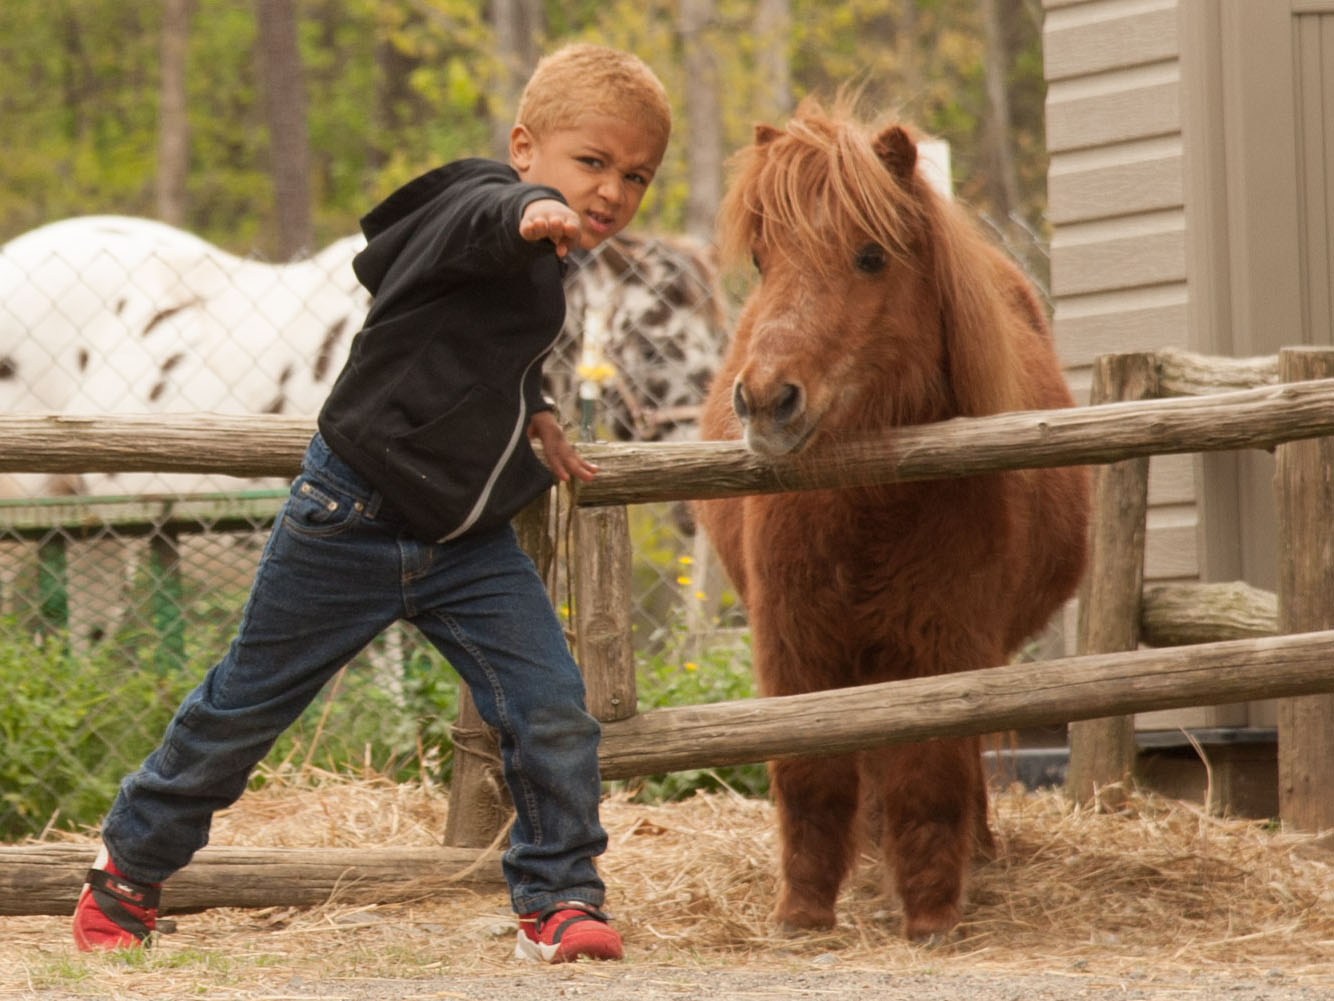 Camp Kid Enjoying DBF's Miniature Horse, Summer